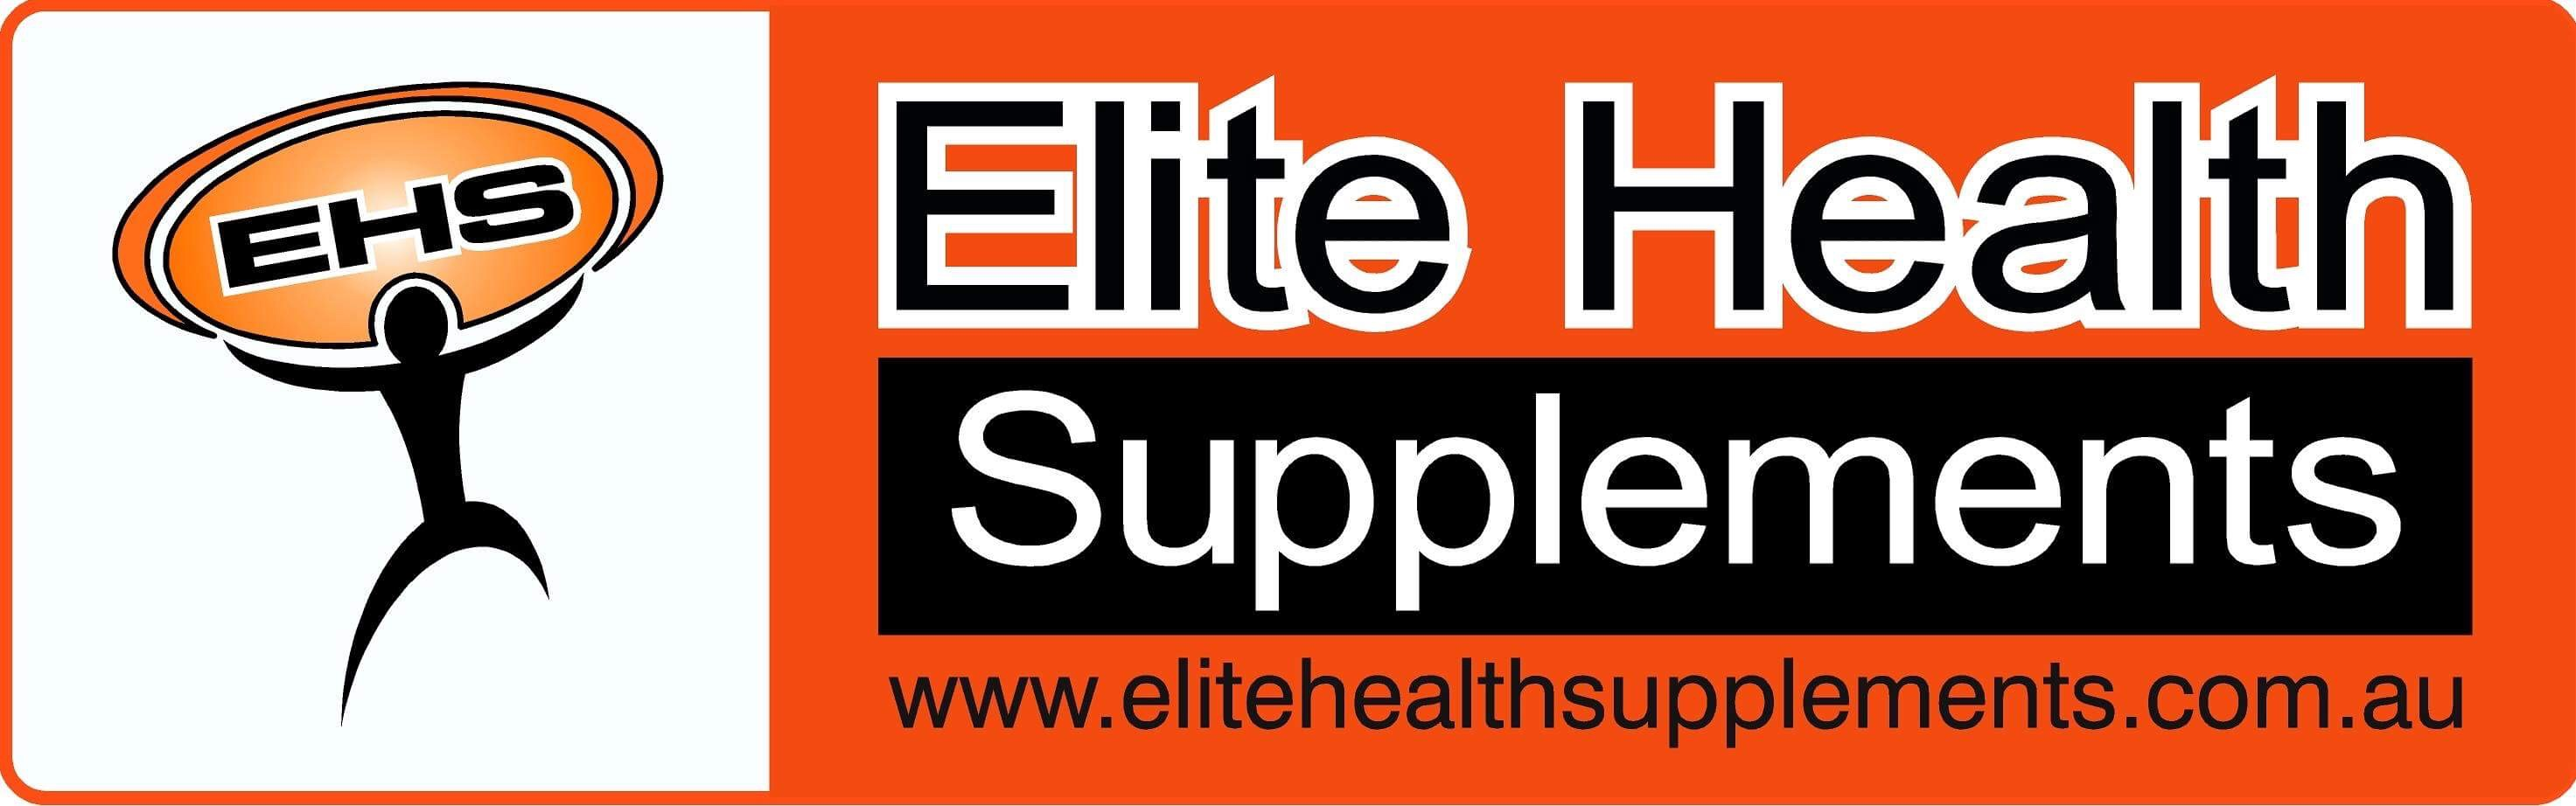 Elite Health Supplements Logo 20180507.JPG